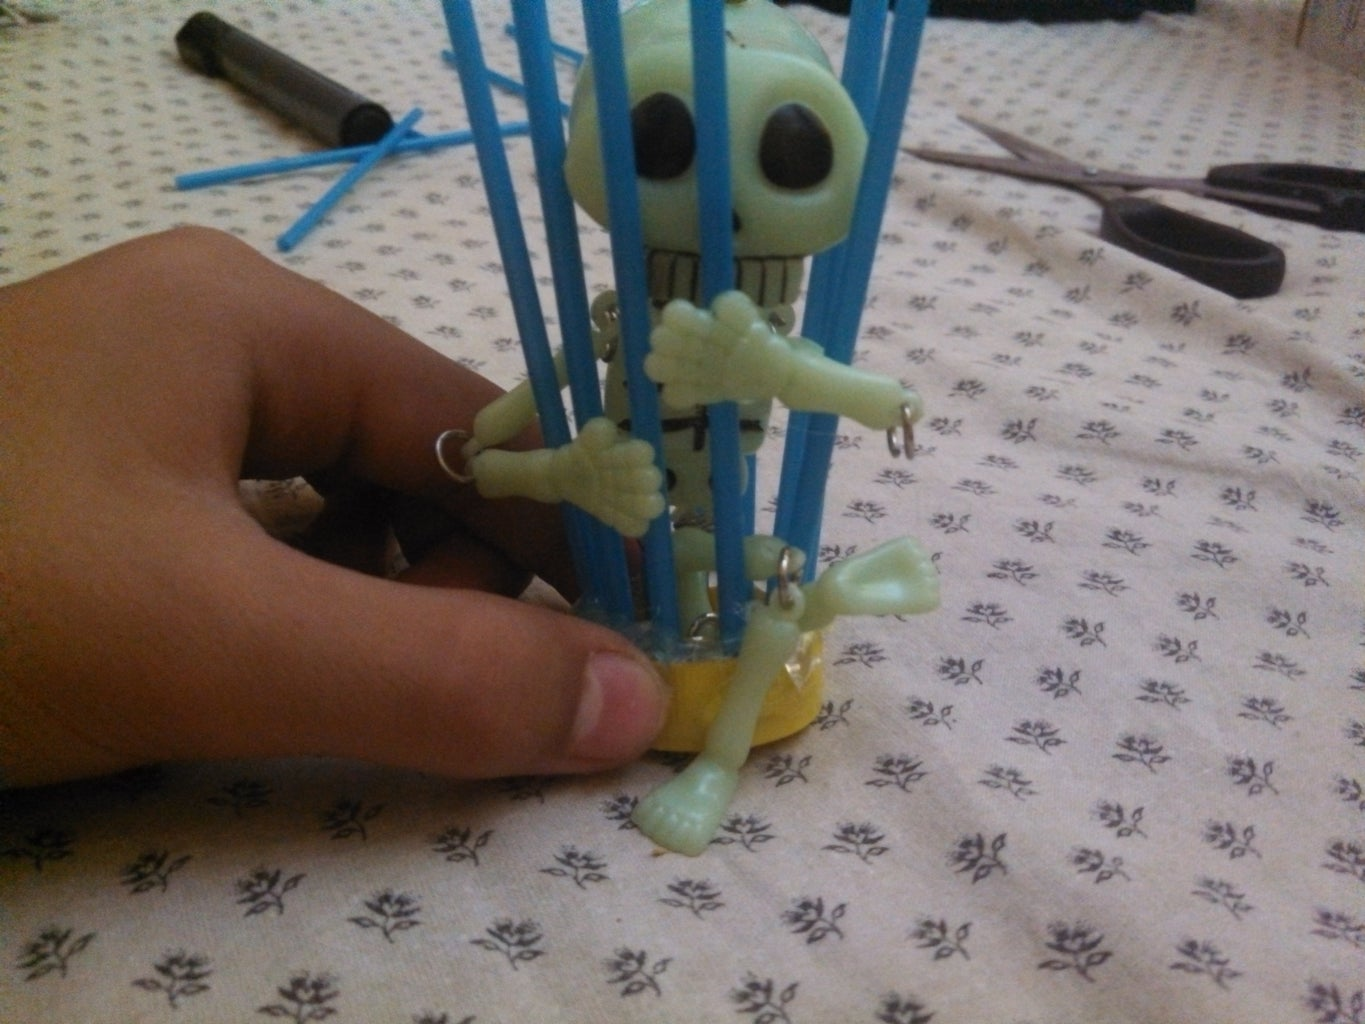 Inserting the Skeleton Inside the Cage